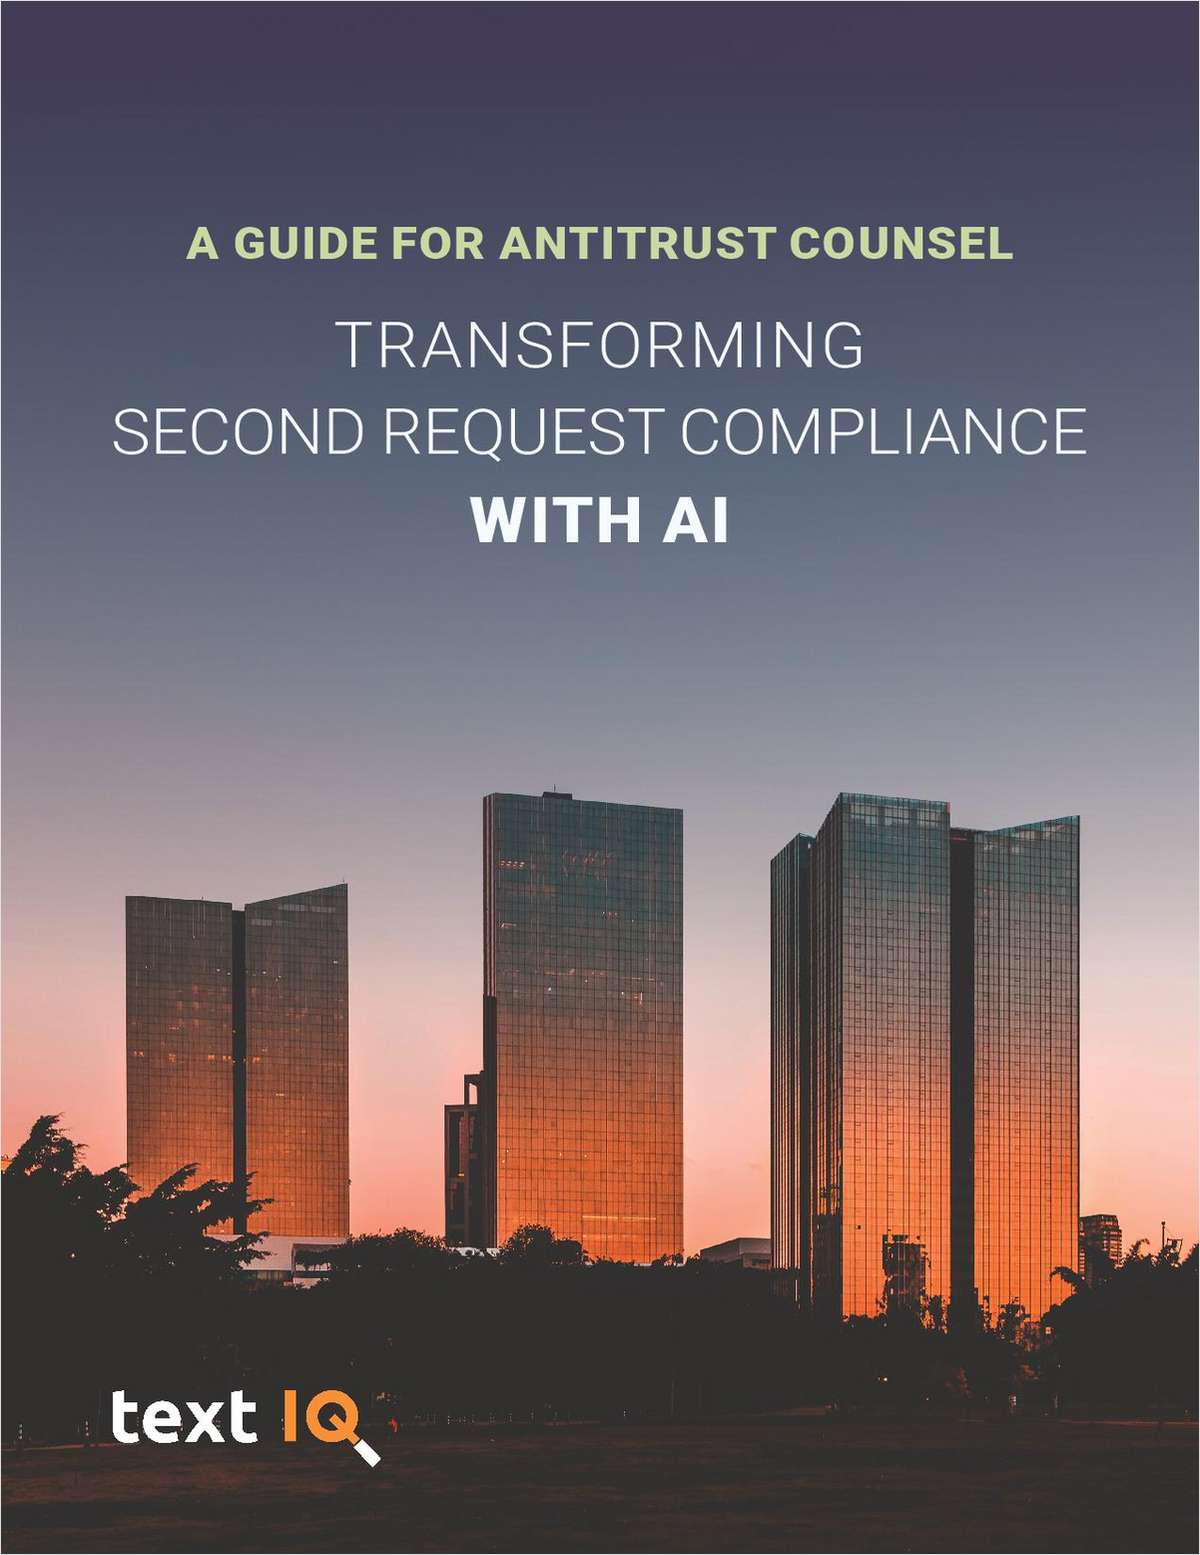 Antitrust Counsel: How to Transform HSR Second Request Compliance with AI